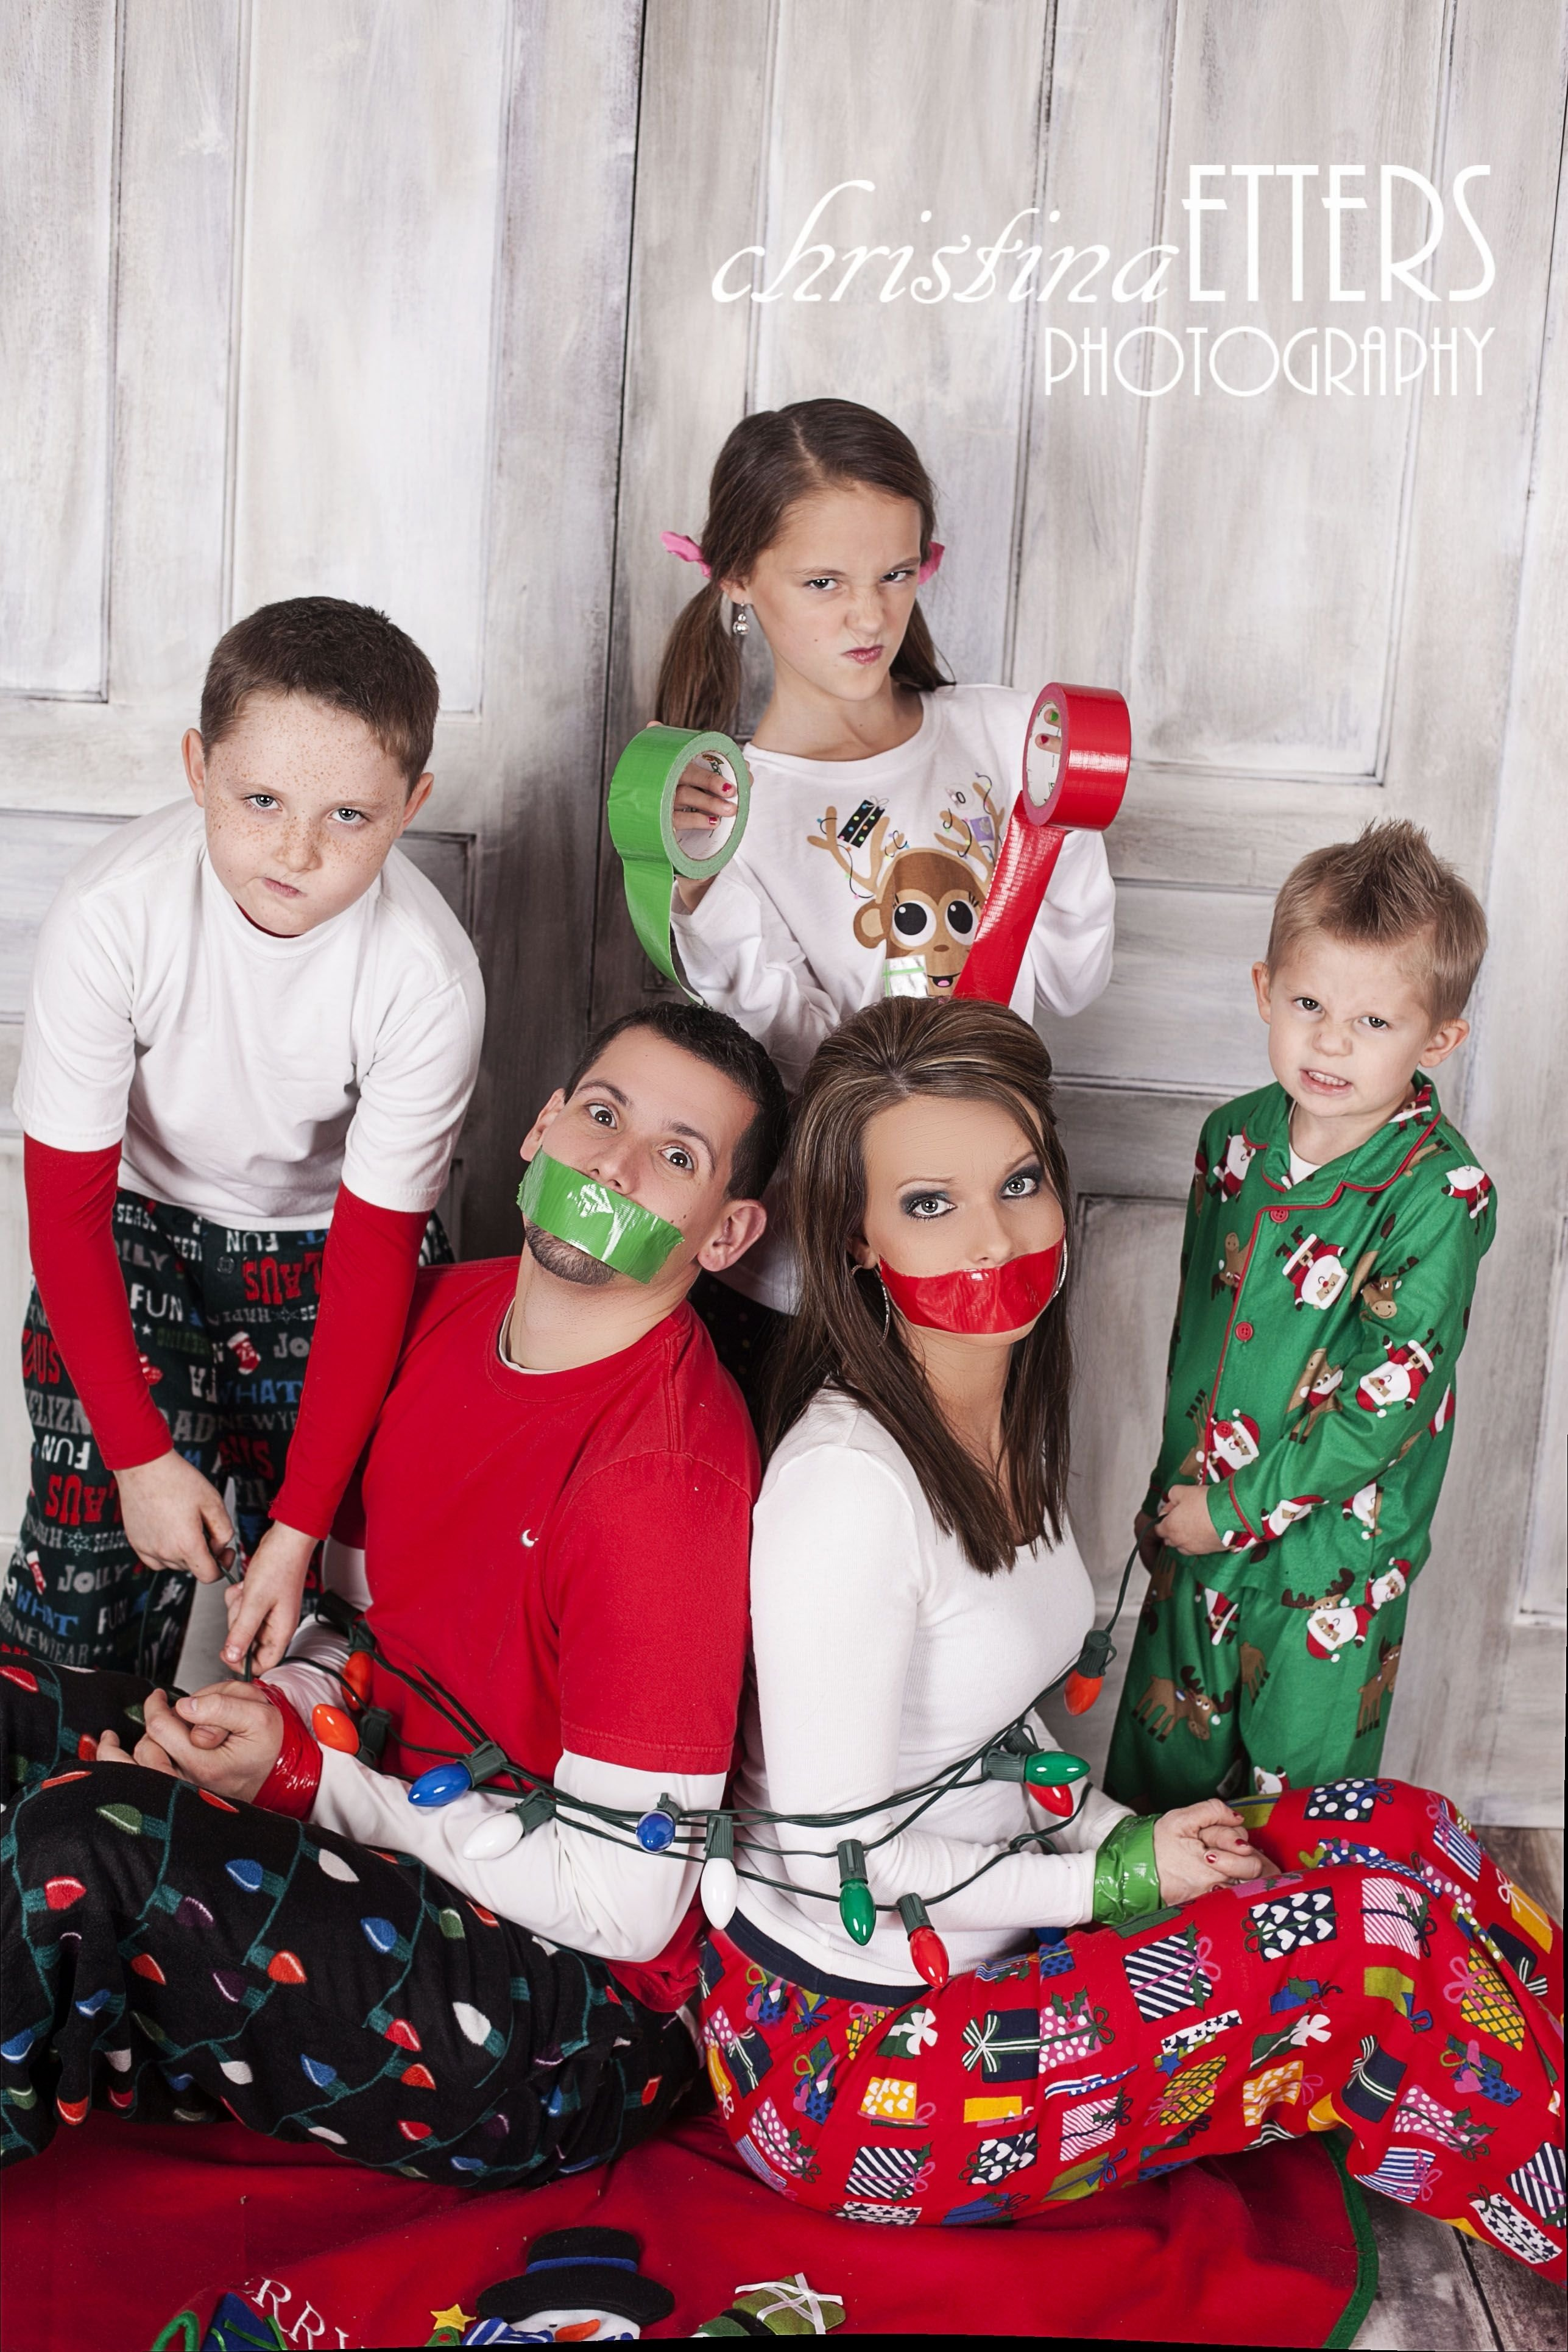 10 Gorgeous Funny Christmas Card Ideas Kids cute family christmas photo kids take parents hostage pinteres 9